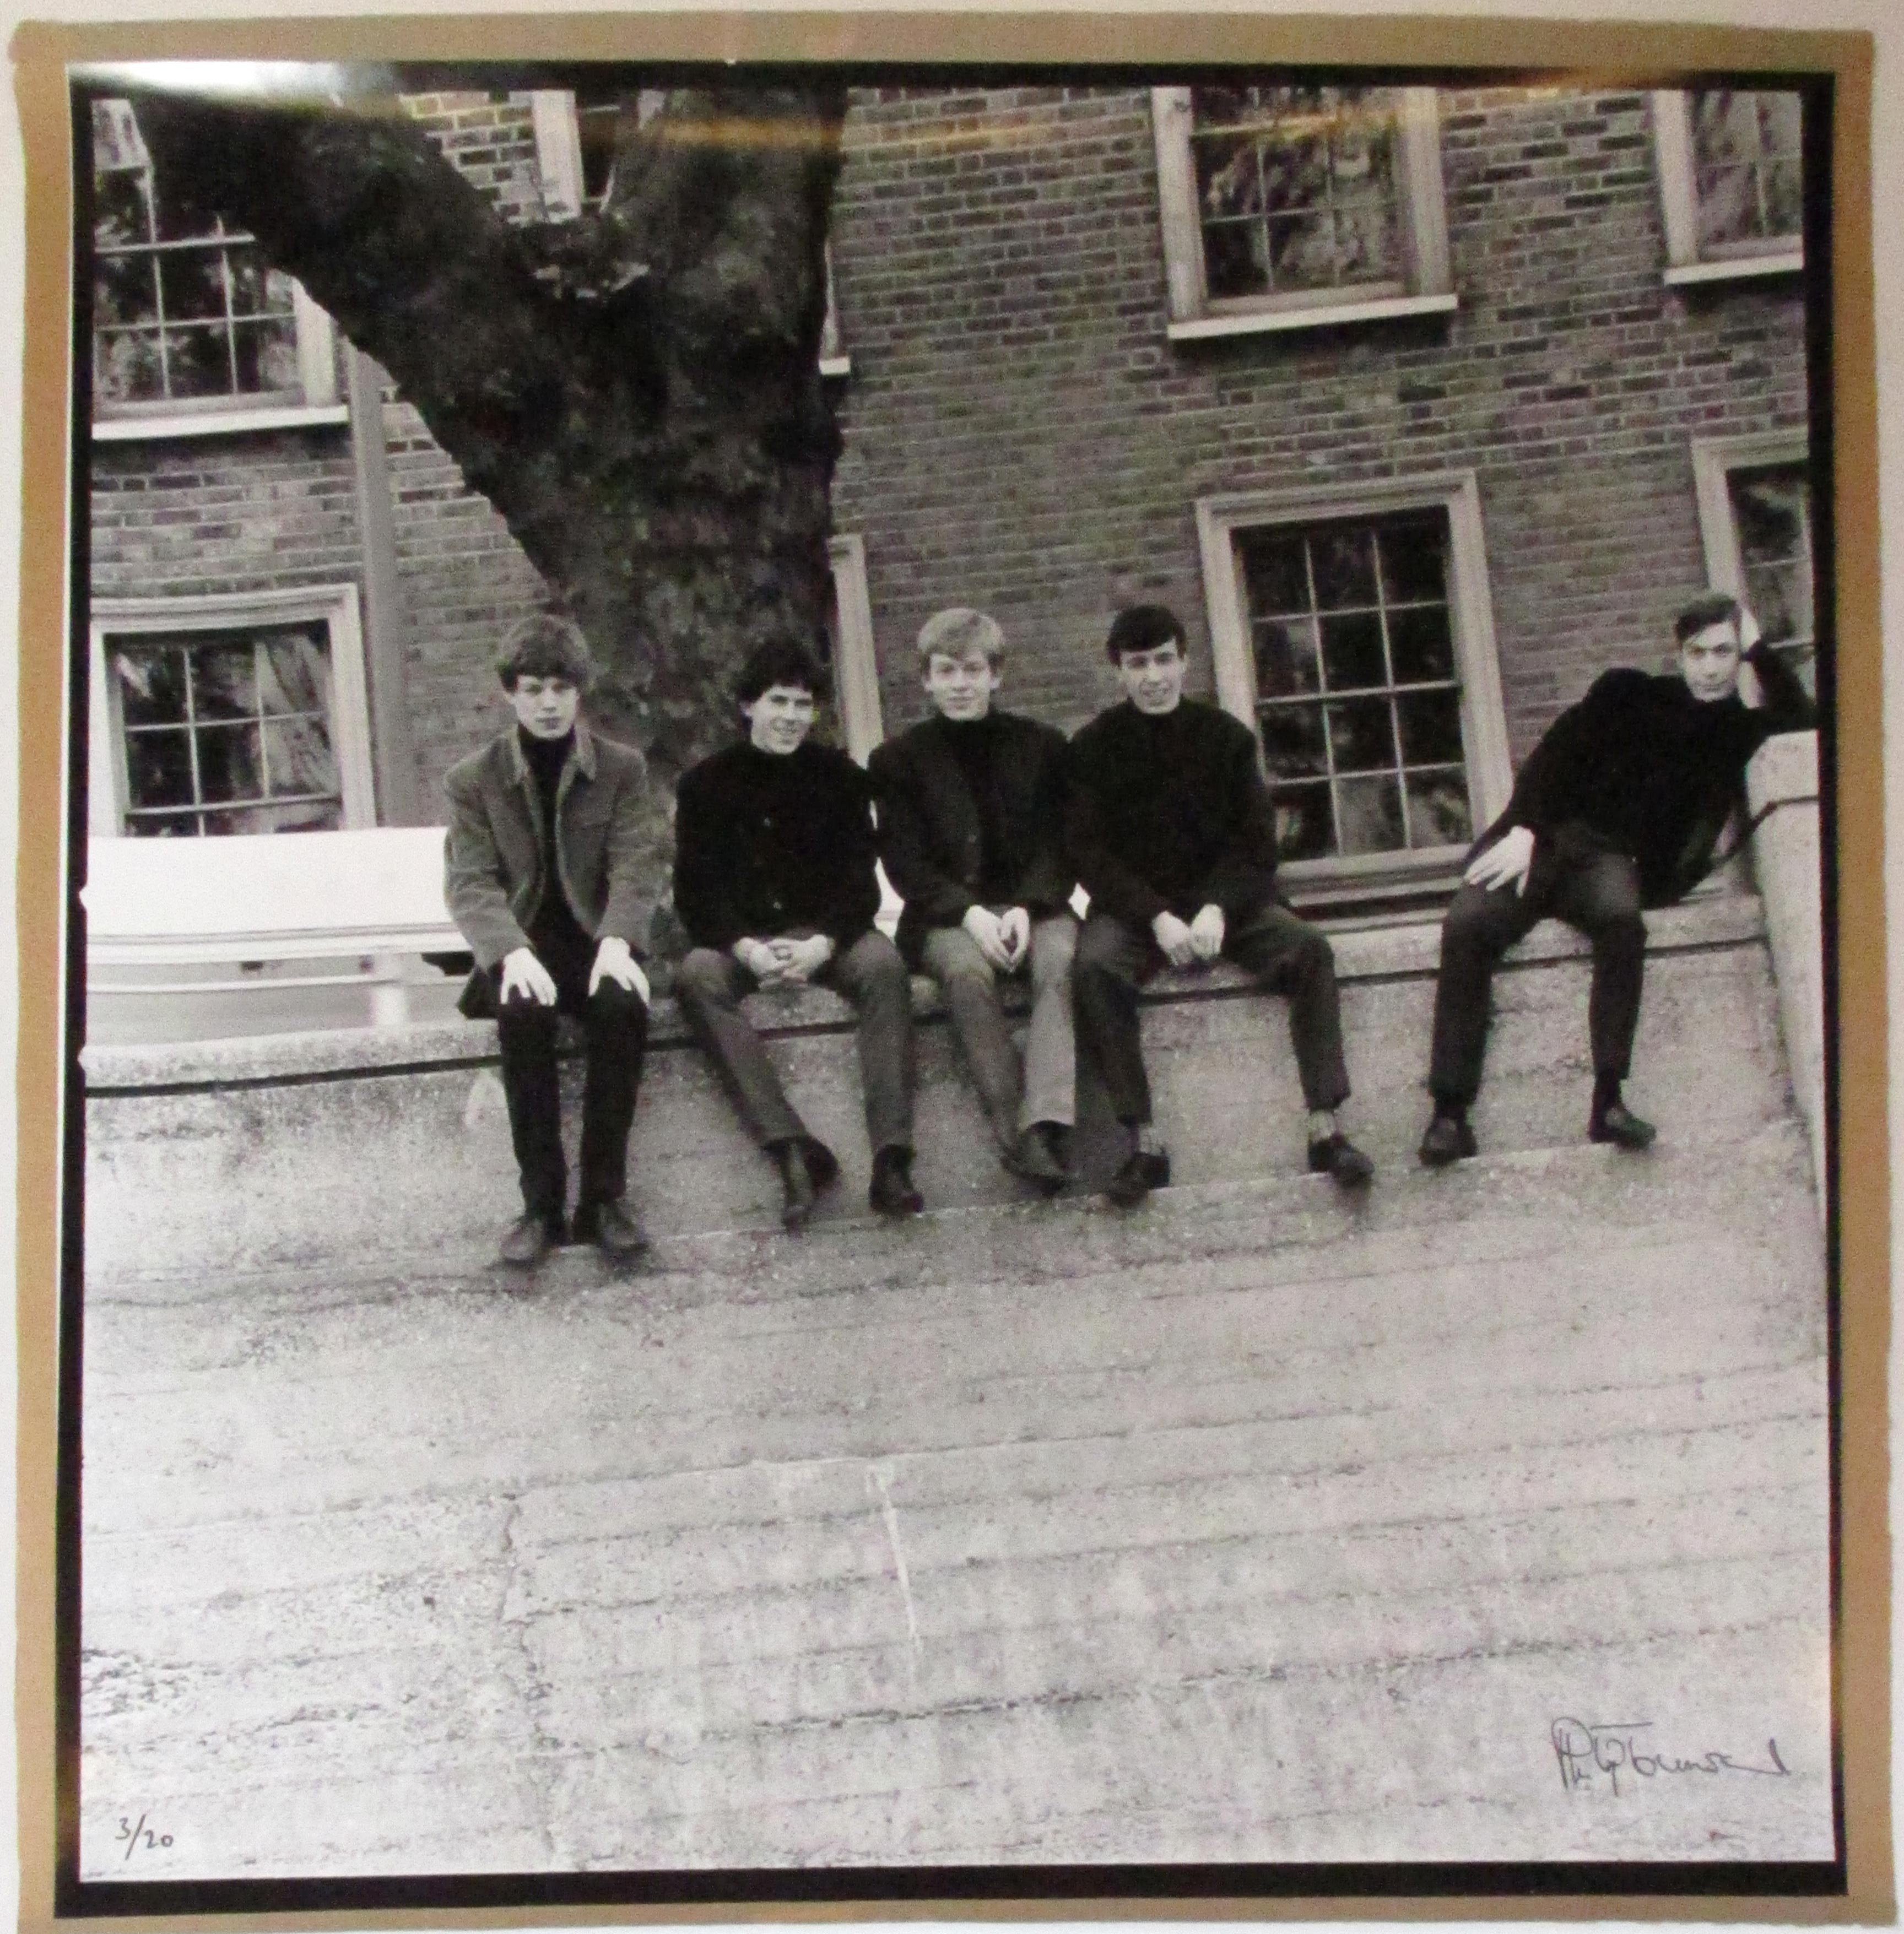 Rolling Stones - On the Wall - IFF0001